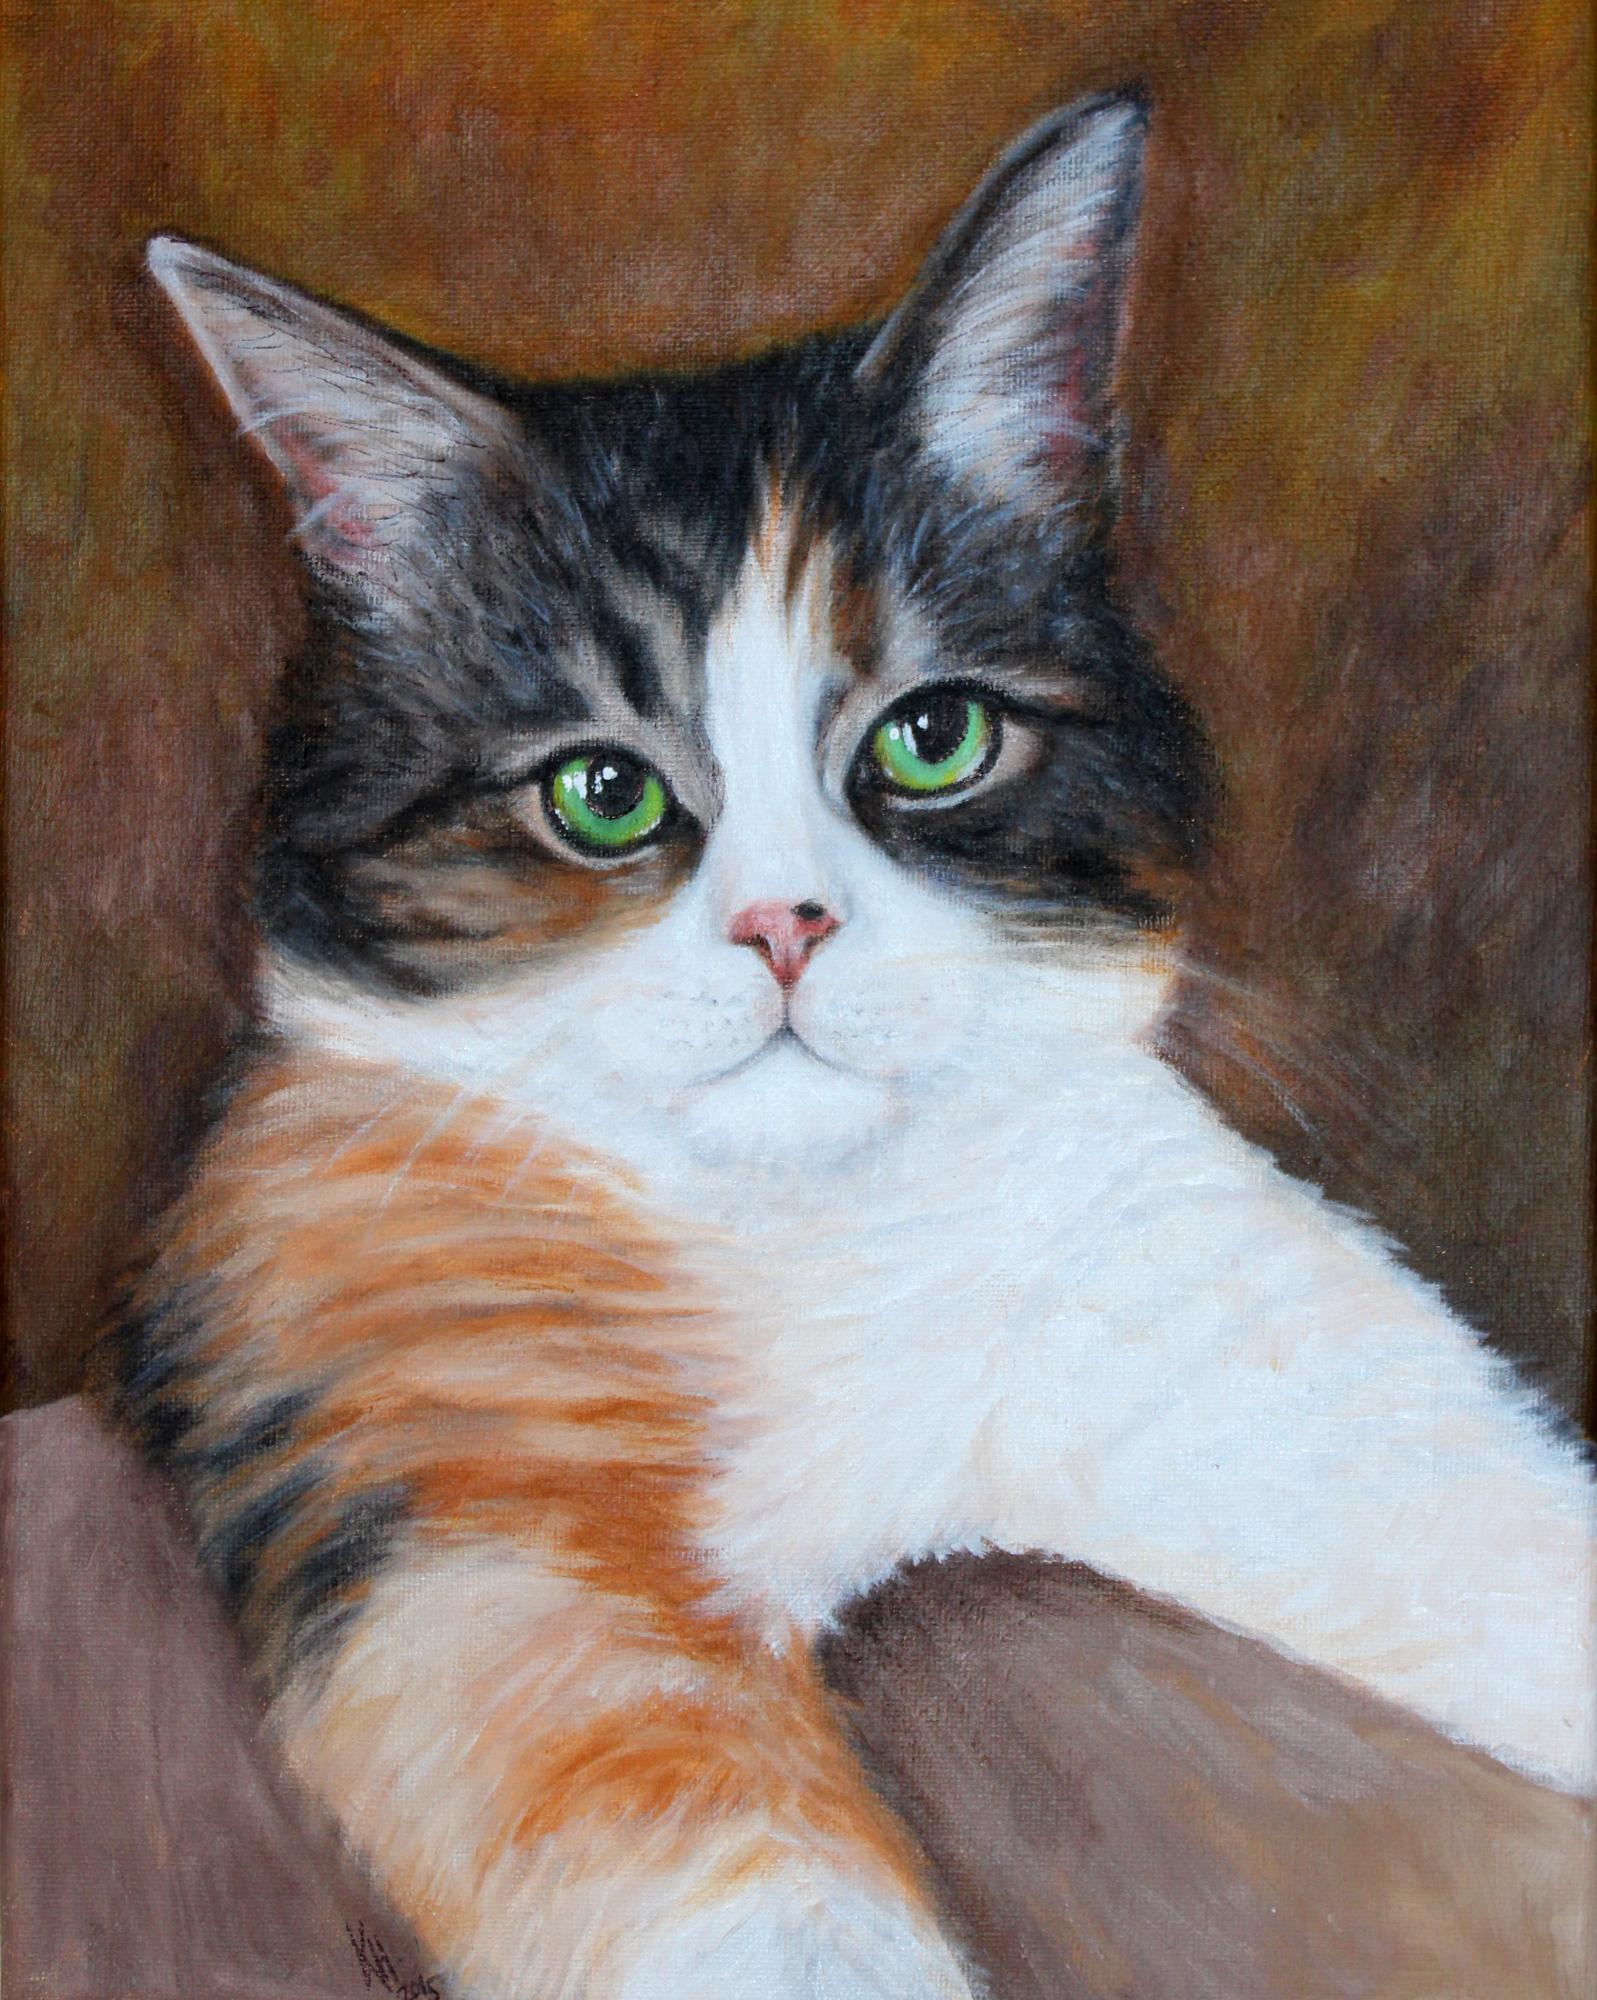 Baby-Bear-Calico-Cat-Painting-Pet-Portra